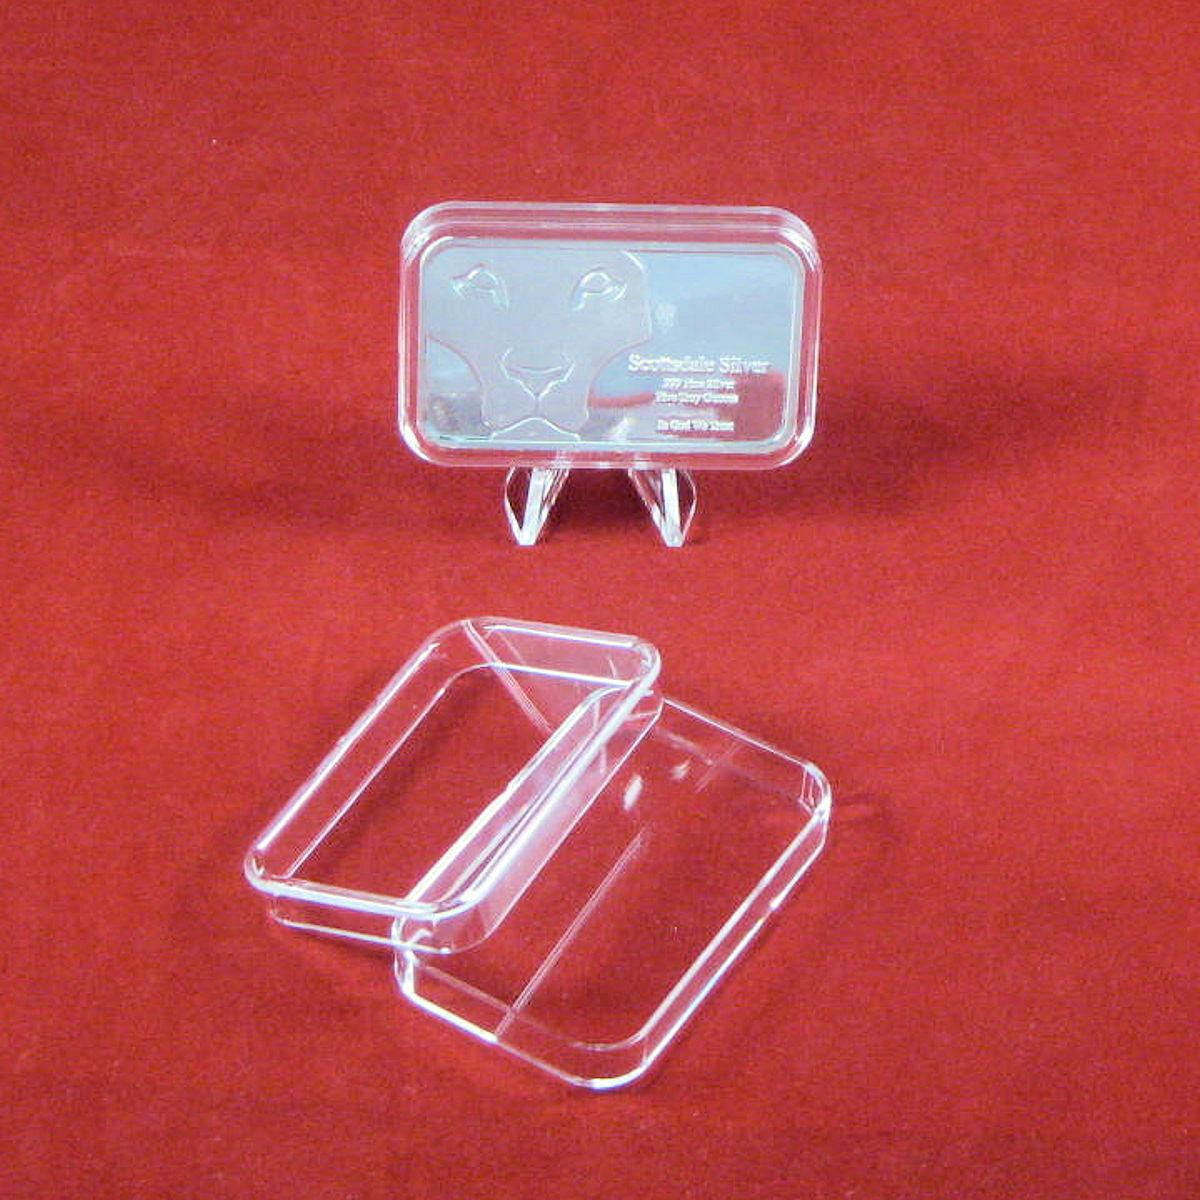 Silver Bullion Or Capsule Holders For 1 5 And 10 Oz